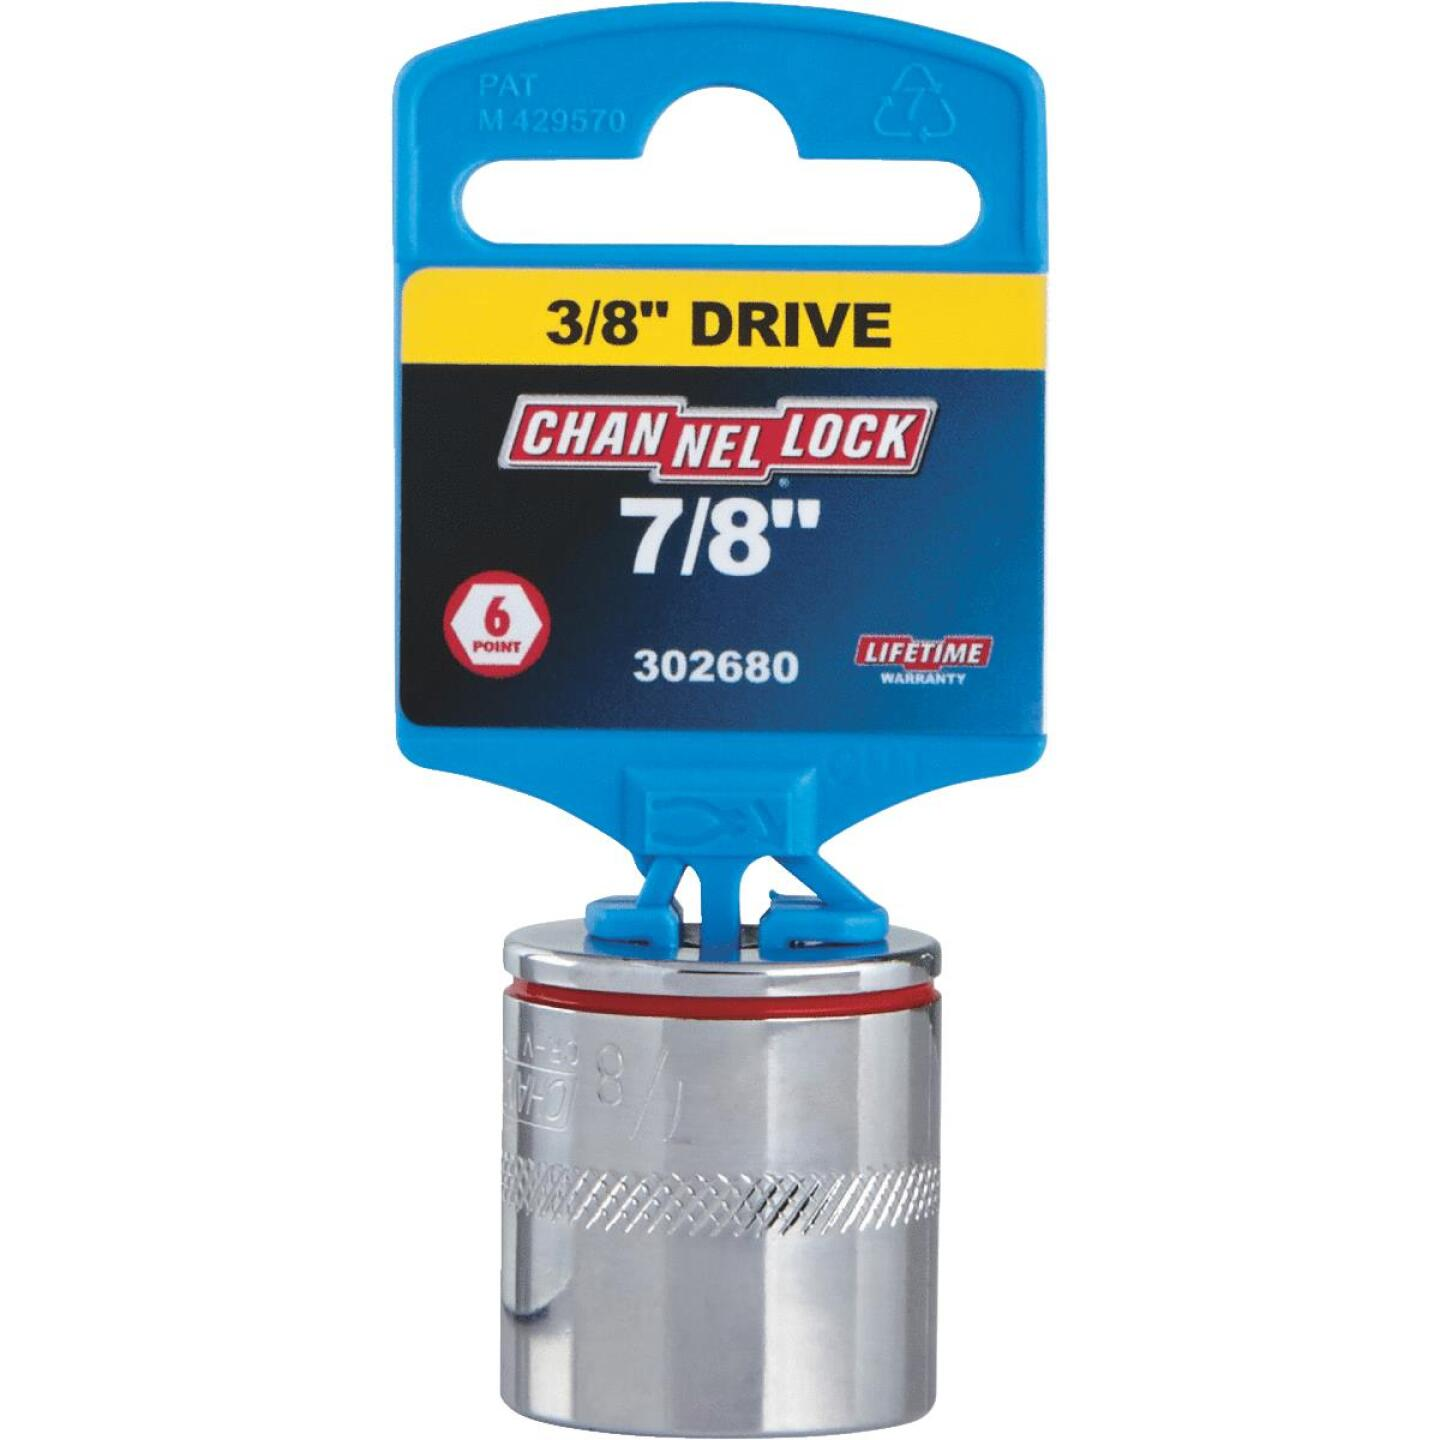 Channellock 3/8 In. Drive 7/8 In. 6-Point Shallow Standard Socket Image 2